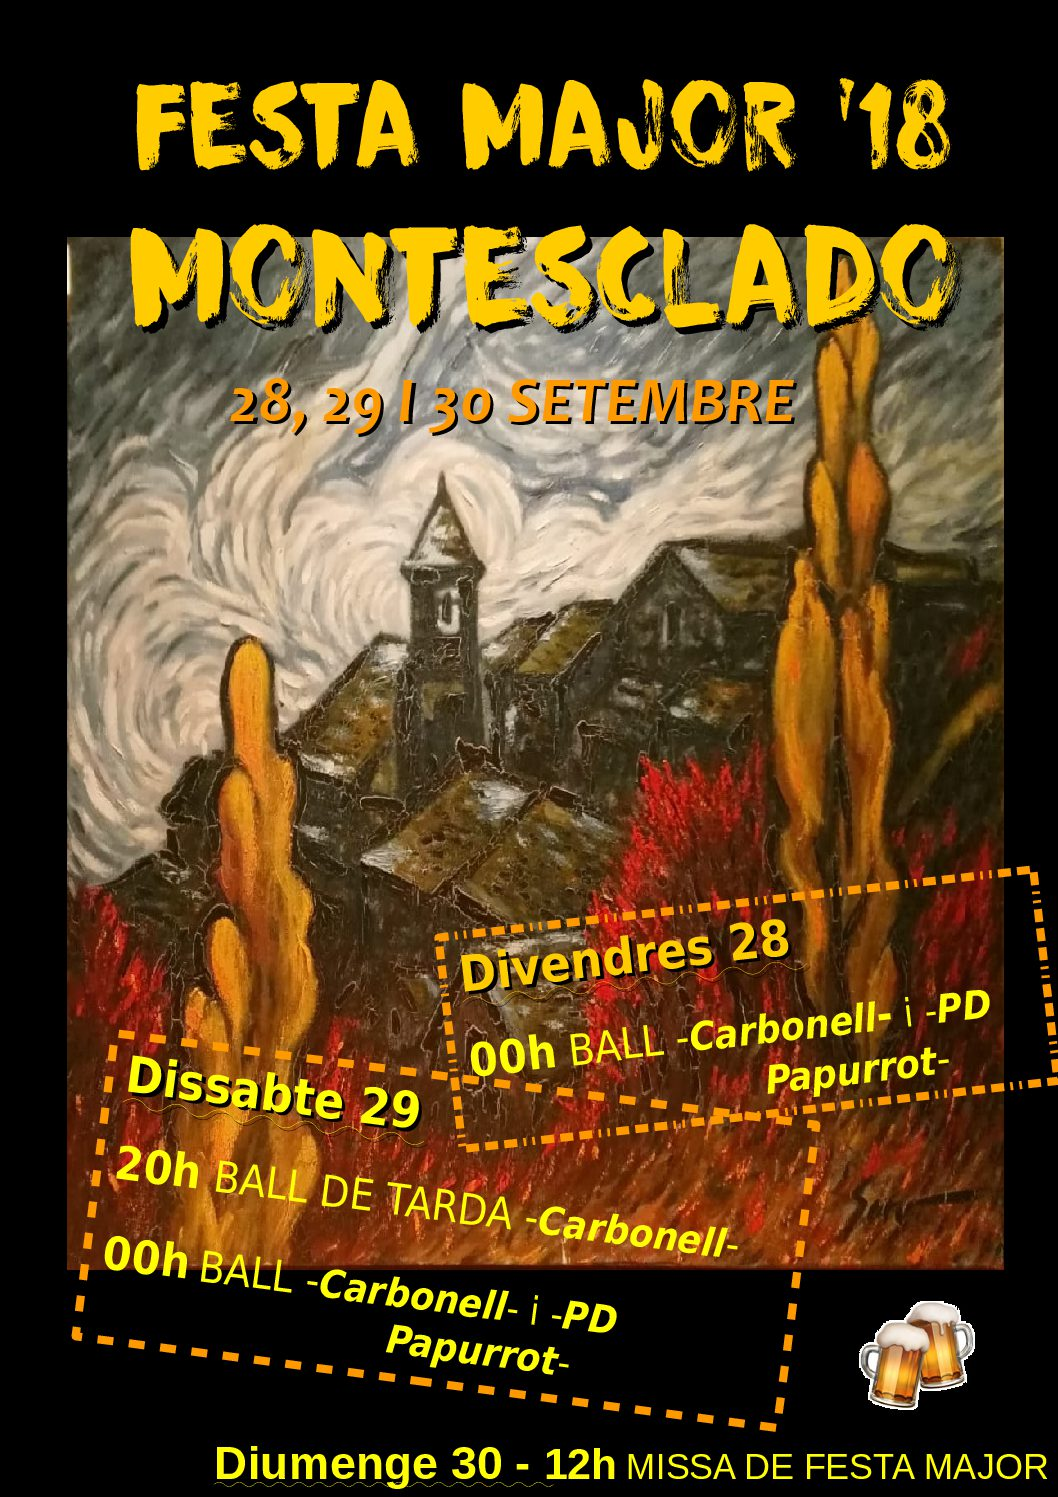 Festa Major de Montesclado 2018